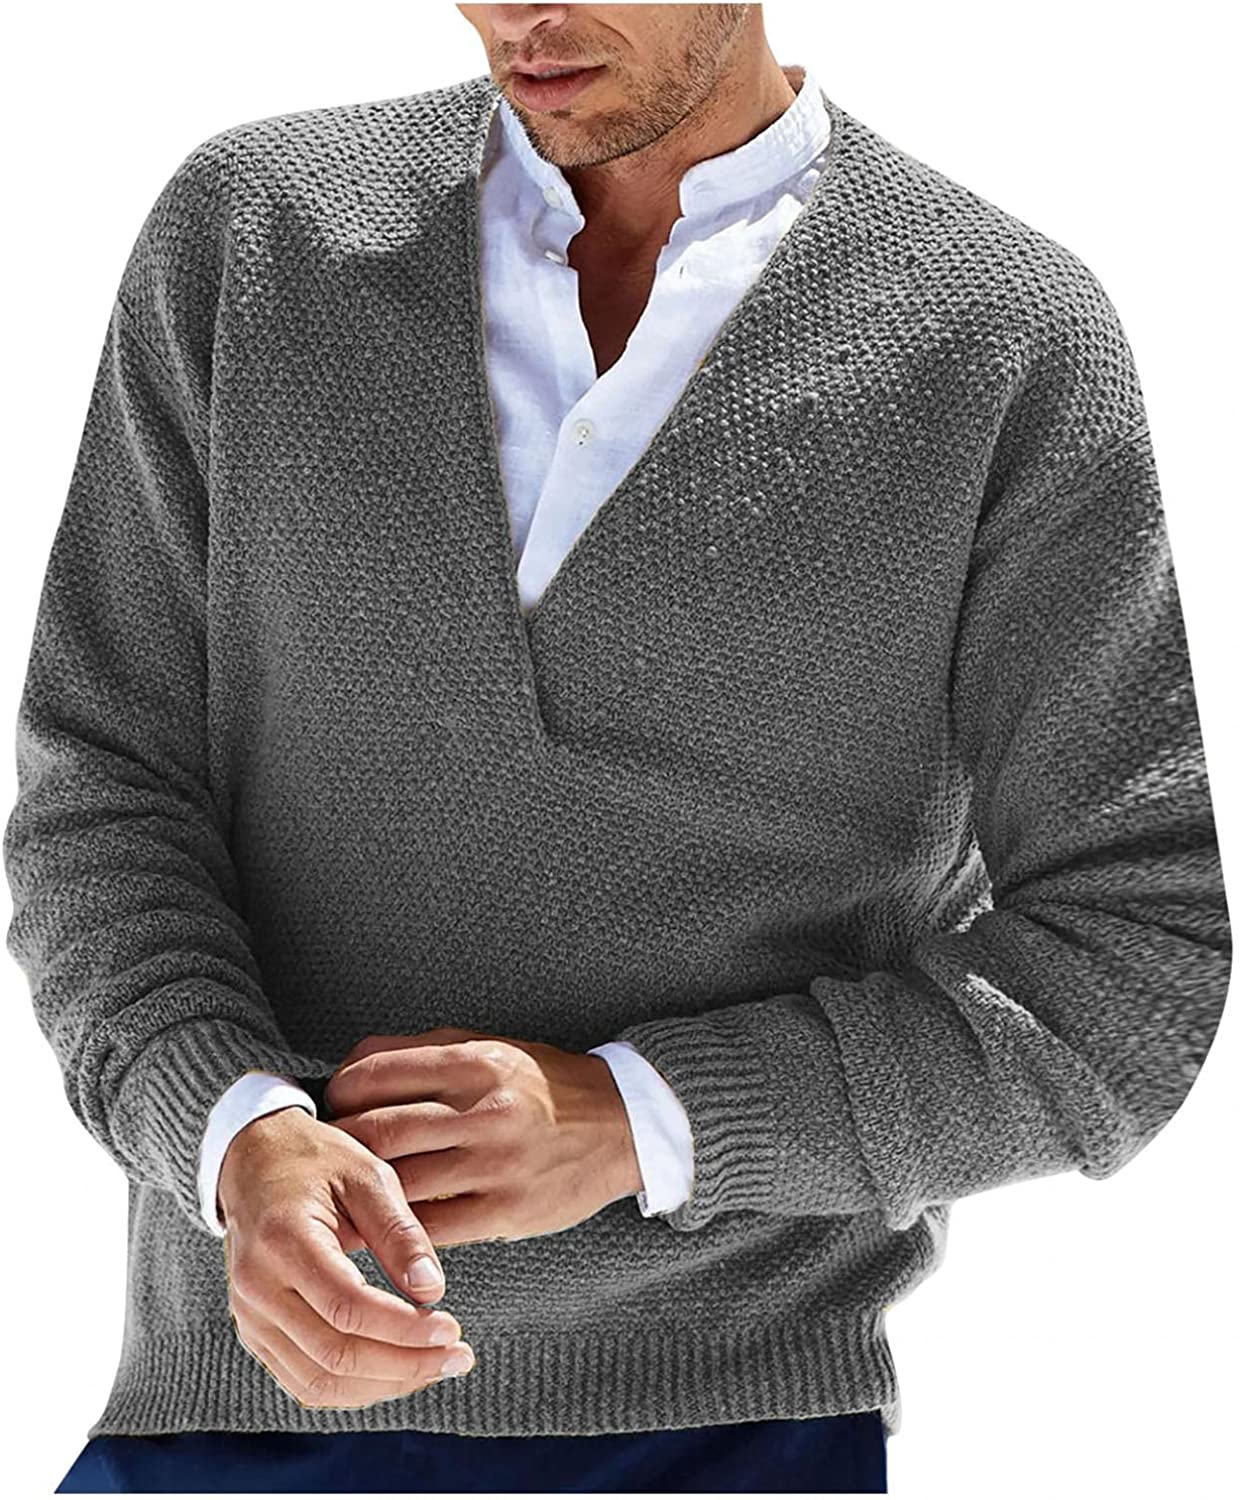 Mens Knitted Cardigan Sweaters Casual Slim Fit V Neck Pullover Sweatershirts Classic Long Sleeve Knitting Blouse